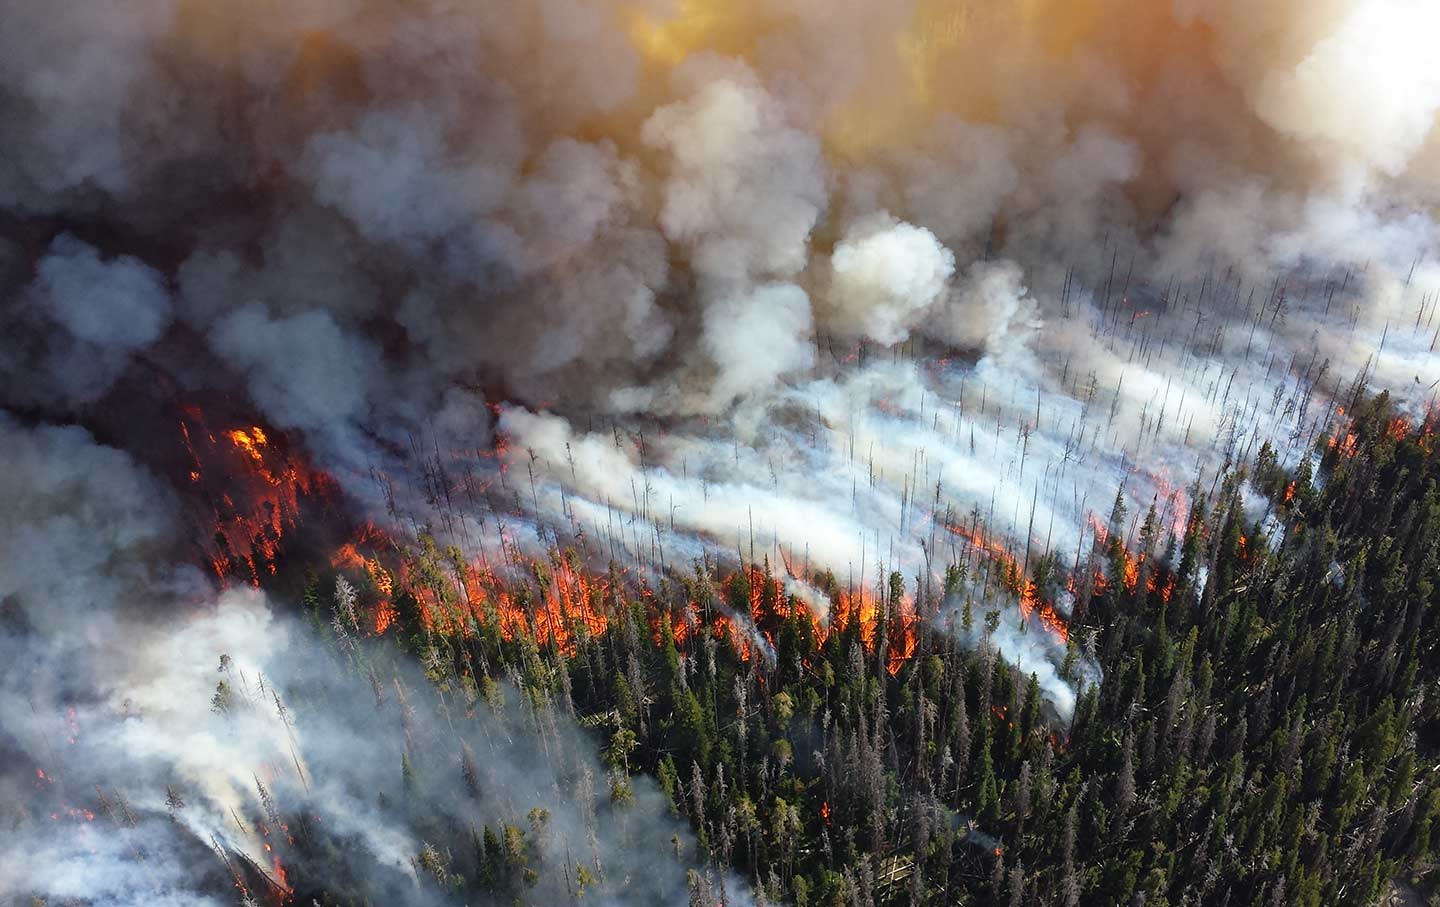 A Wildfire Engulfs Parts Of Yellowstone National Park In 2013. (Mike  Lewelling / National Park Service)